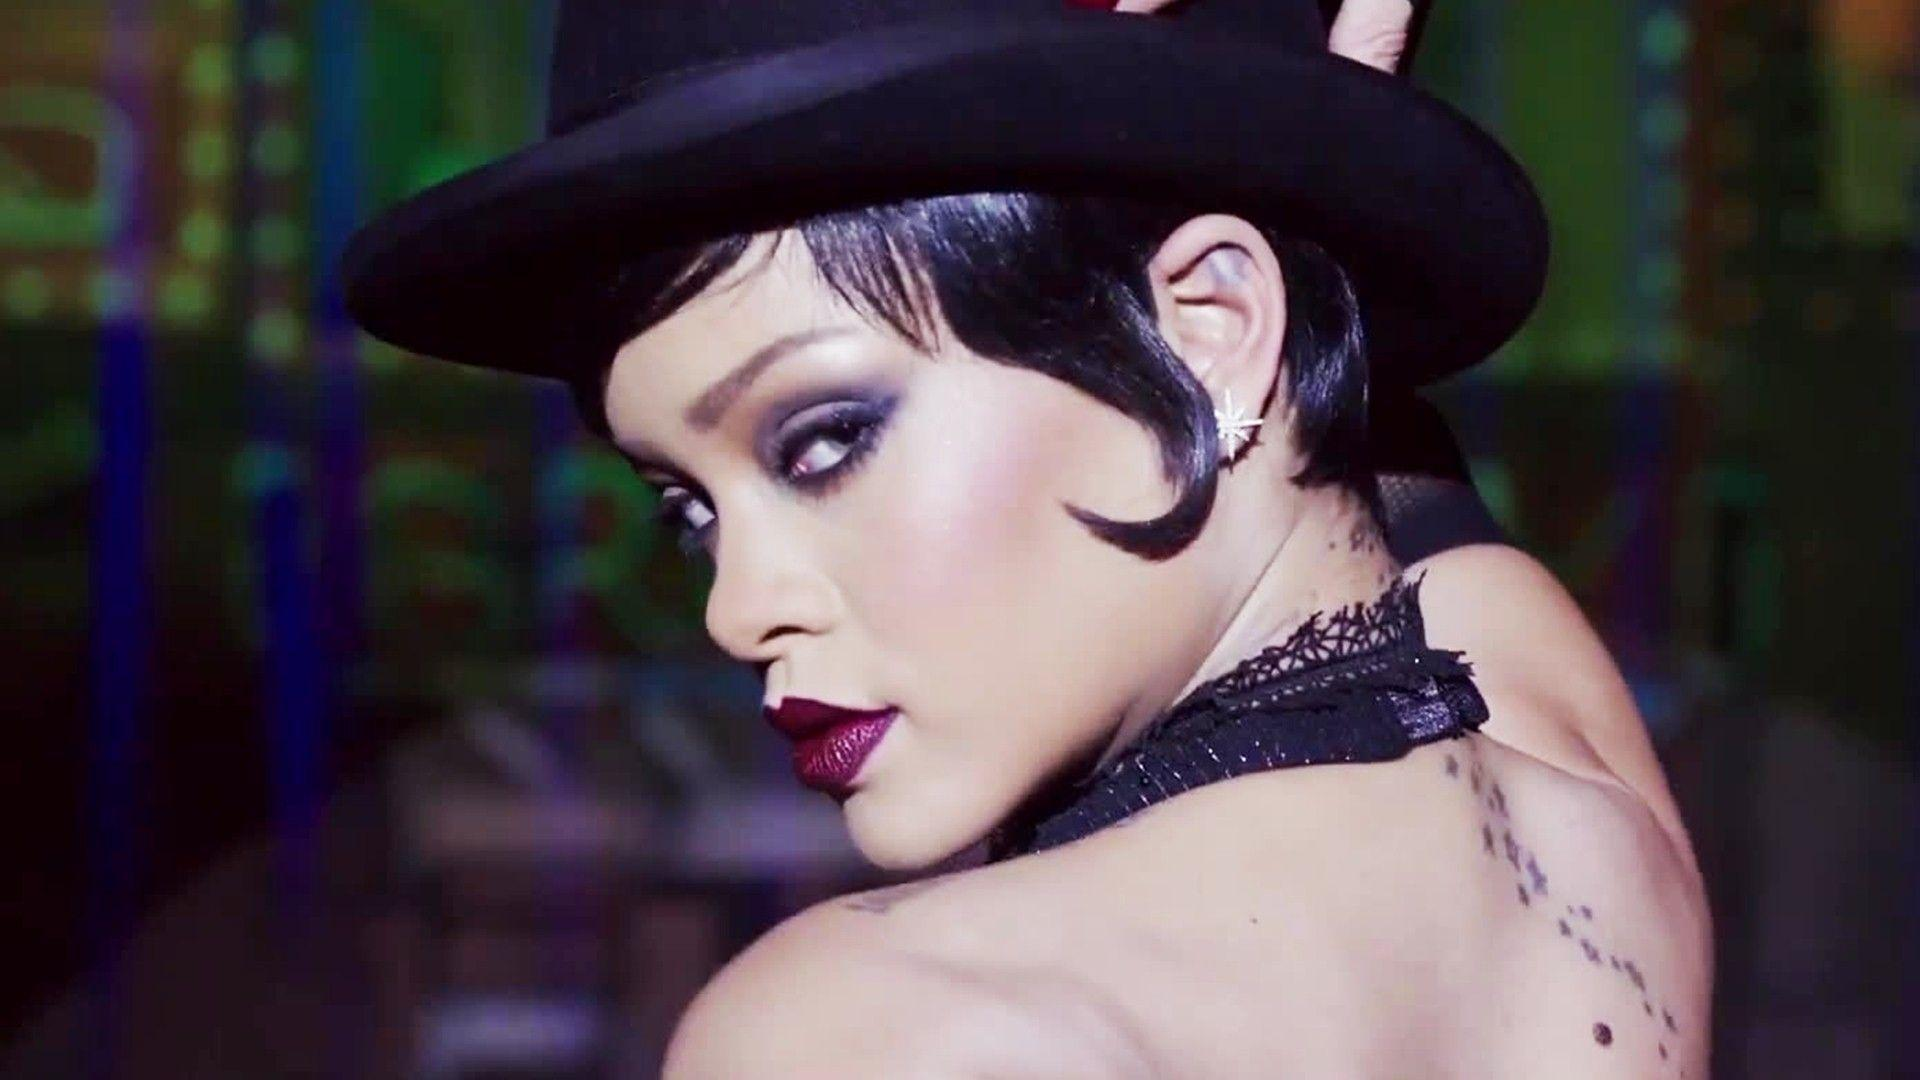 Rihanna Wallpapers HD Backgrounds, Image, Pics, Photos Free